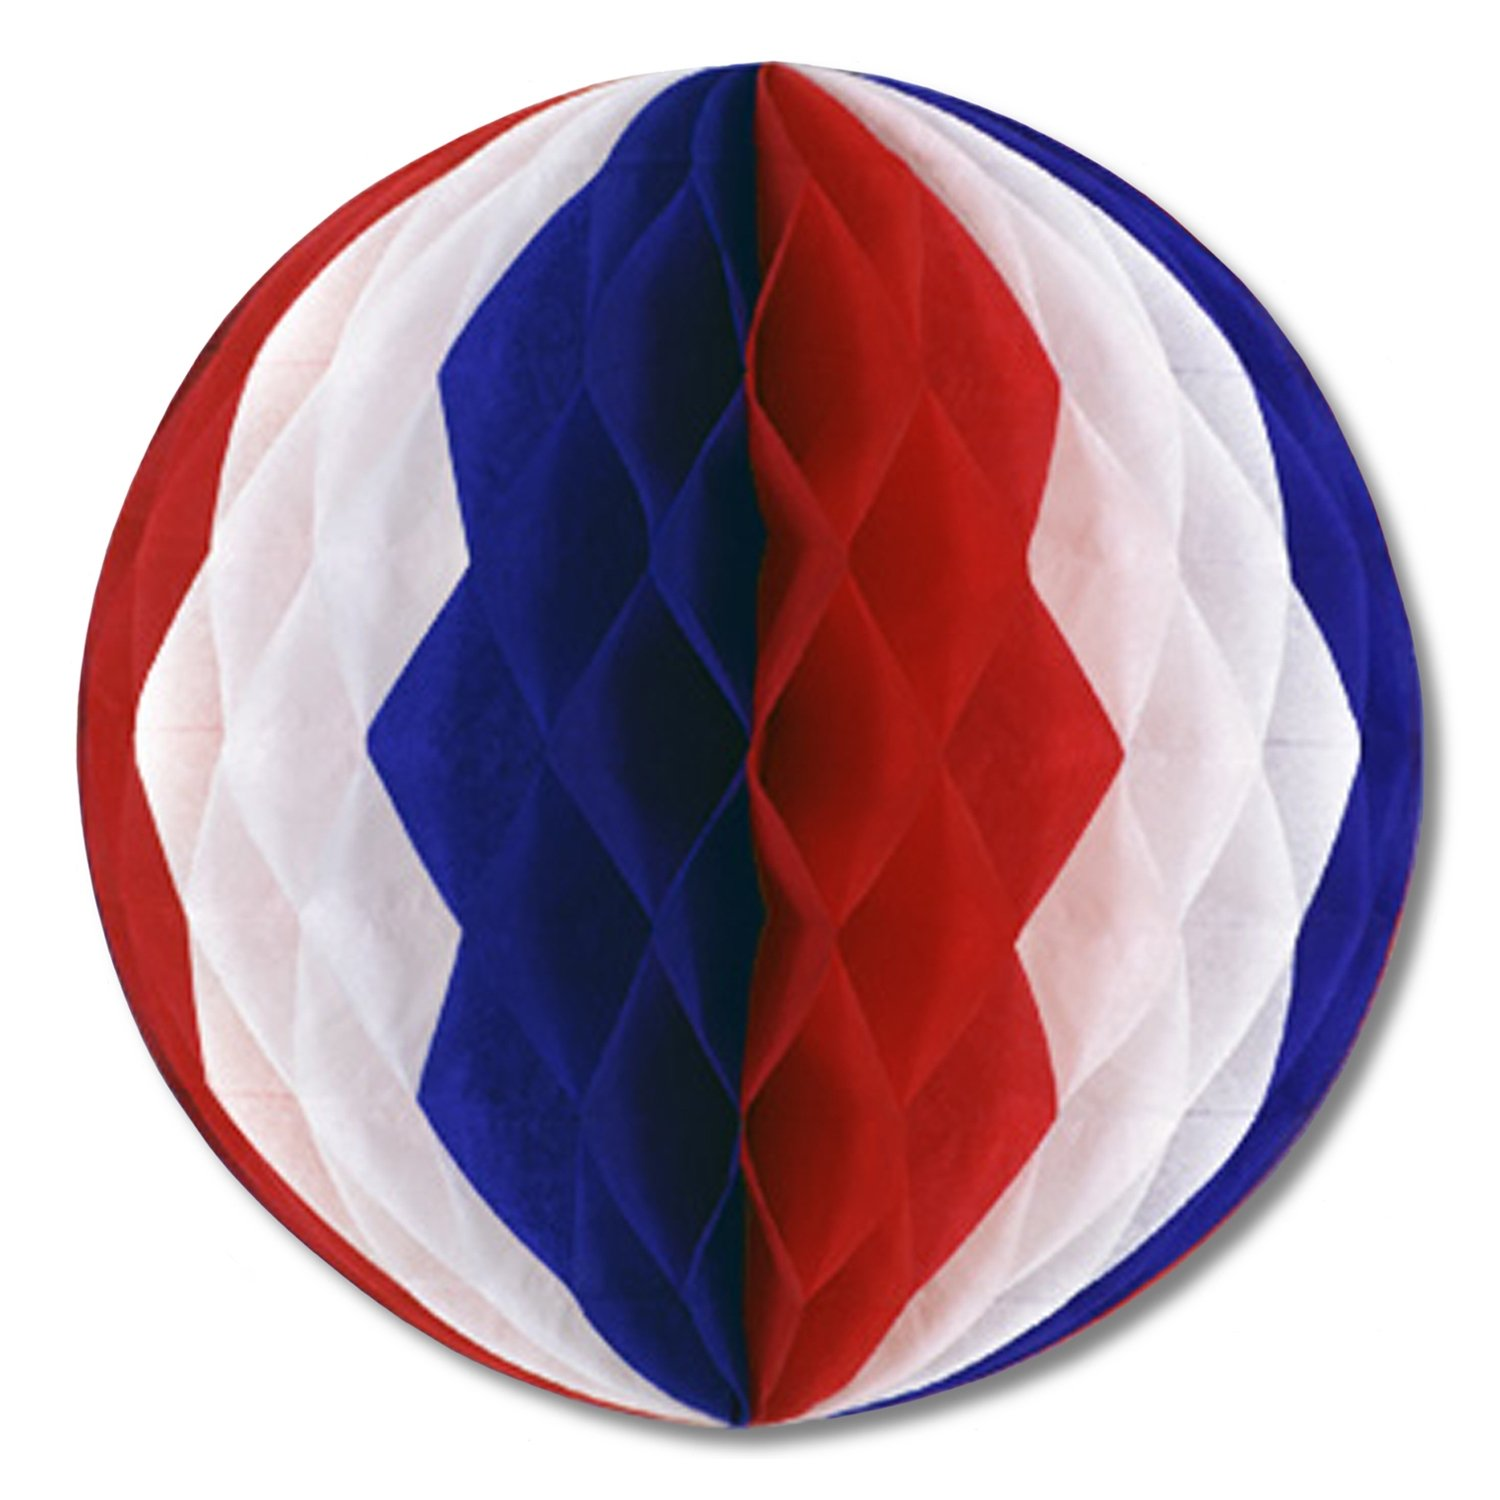 Beistle 55614-RWB 12-Pack Tissue Balls, 14-Inch, Red/White/Blue